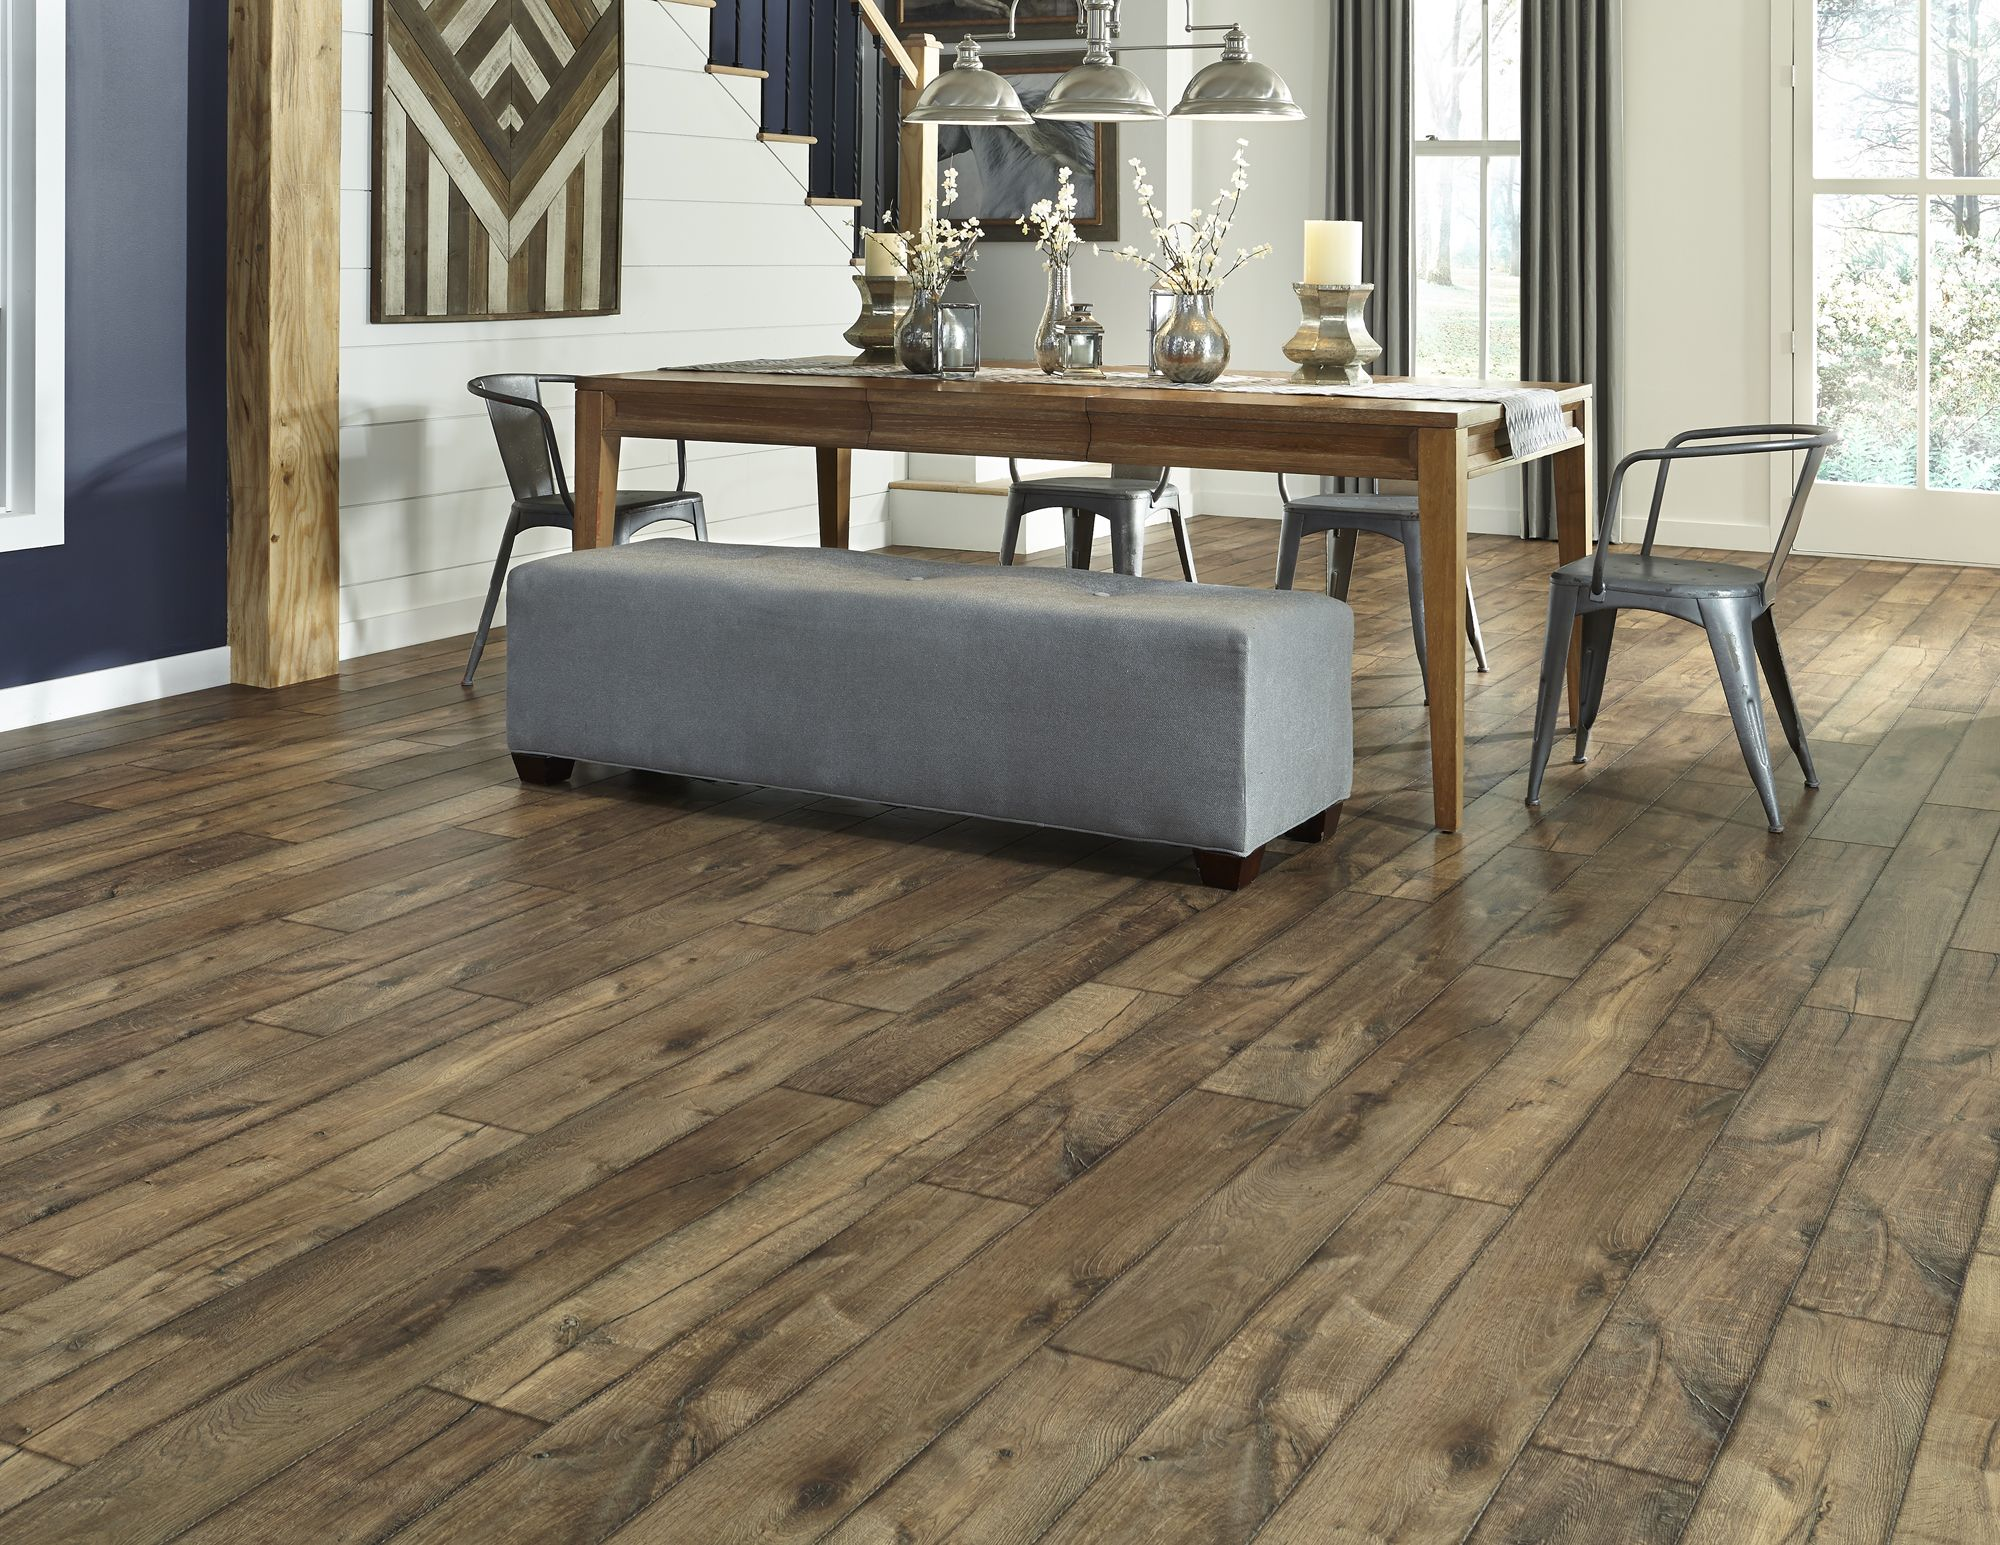 Farmhouse Kitchen Tile Floors Antique Farmhouse Hickory A Dream Home Laminate With A